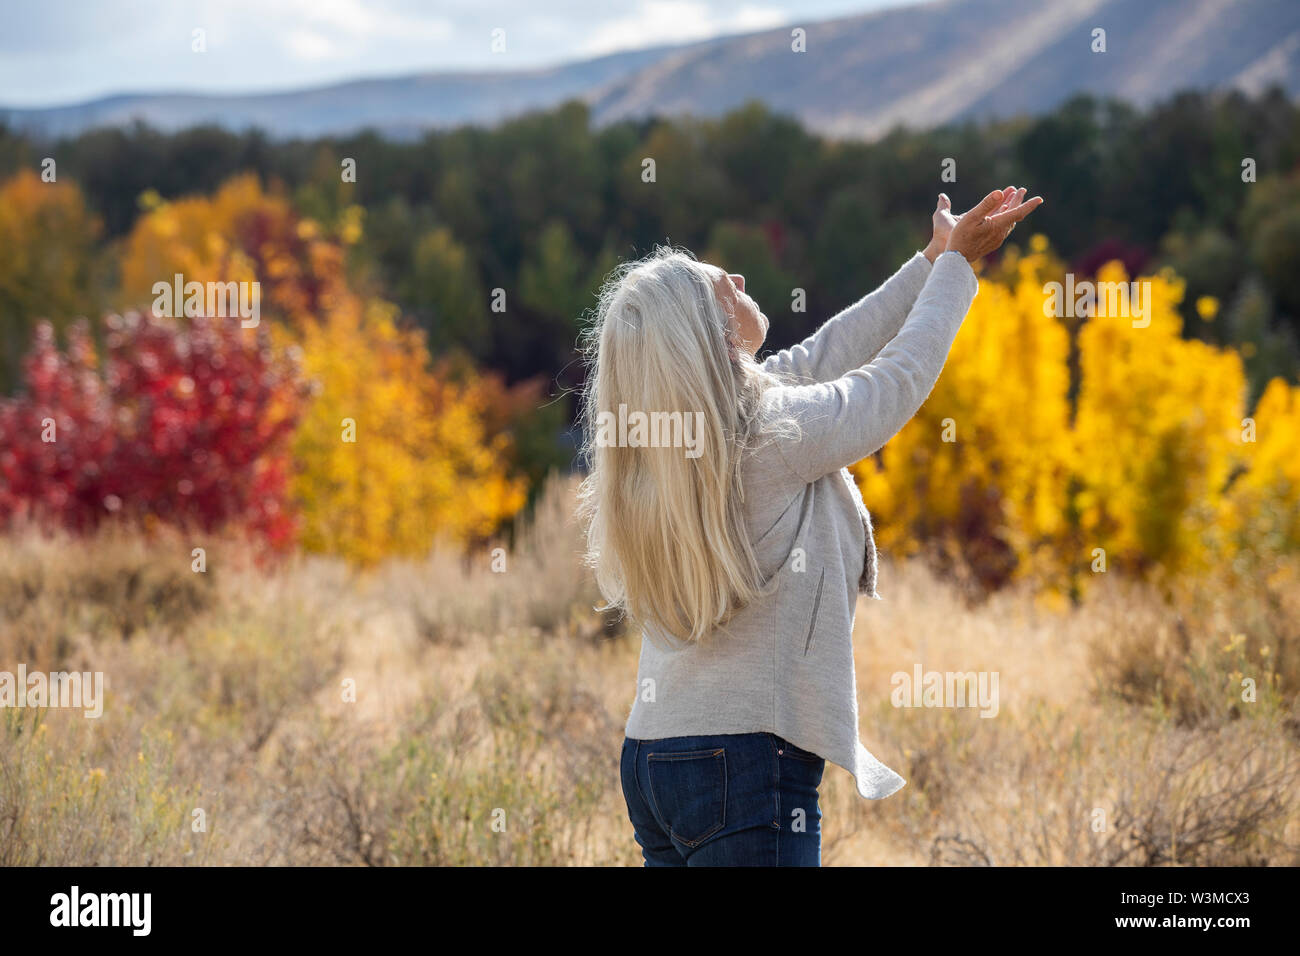 Mature woman with her arms raised by autumn forest - Stock Image